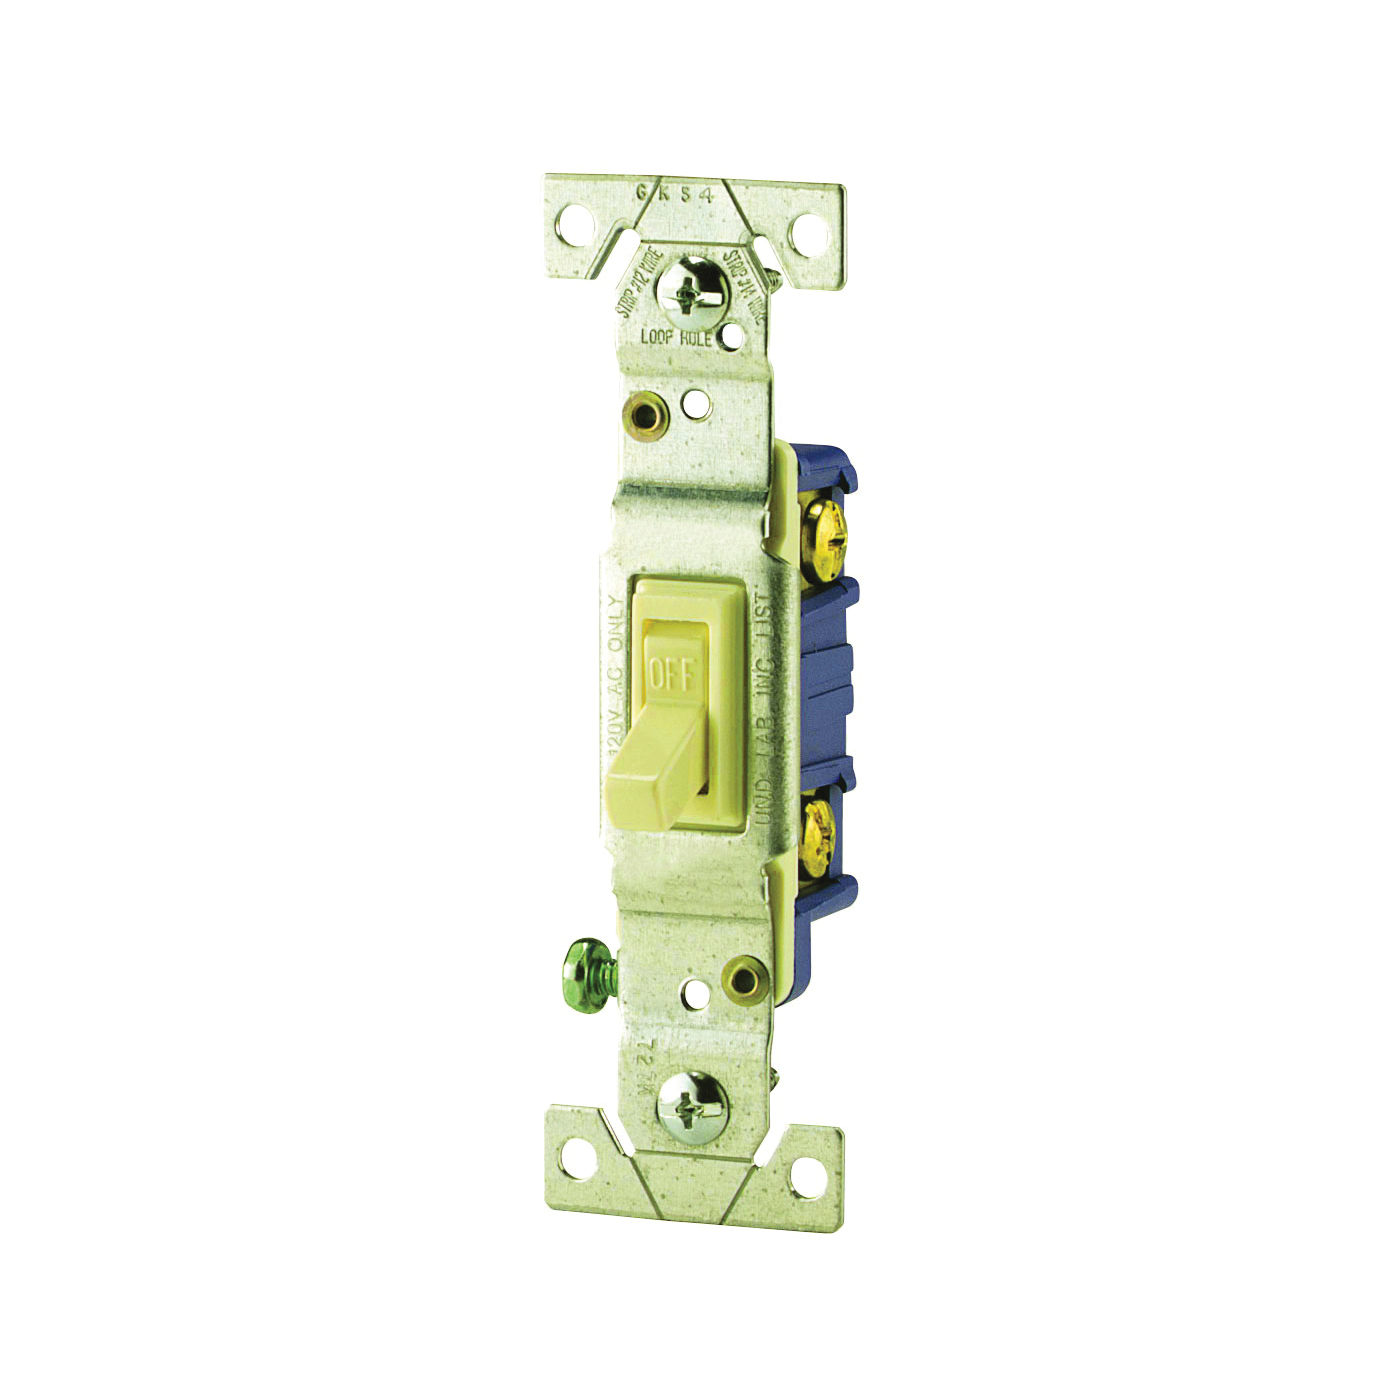 Picture of Eaton Wiring Devices C1301-7V Toggle Switch, 15 A, 120 V, Push-In Terminal, 5-20R, Polycarbonate Housing Material